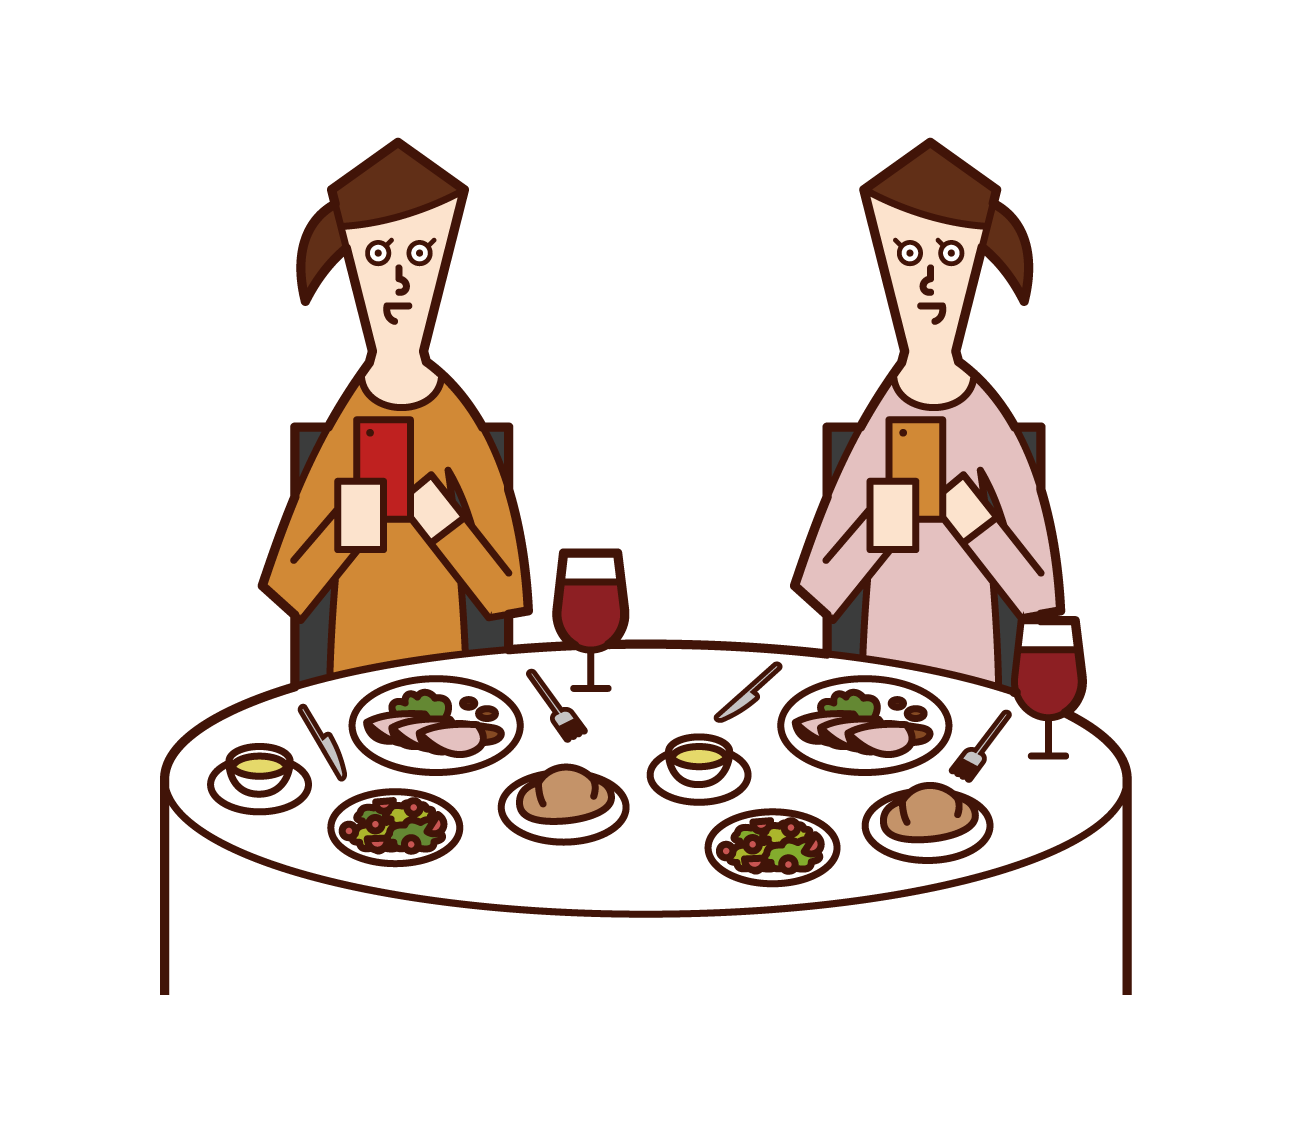 Illustration of people (women) taking pictures of food in restaurants